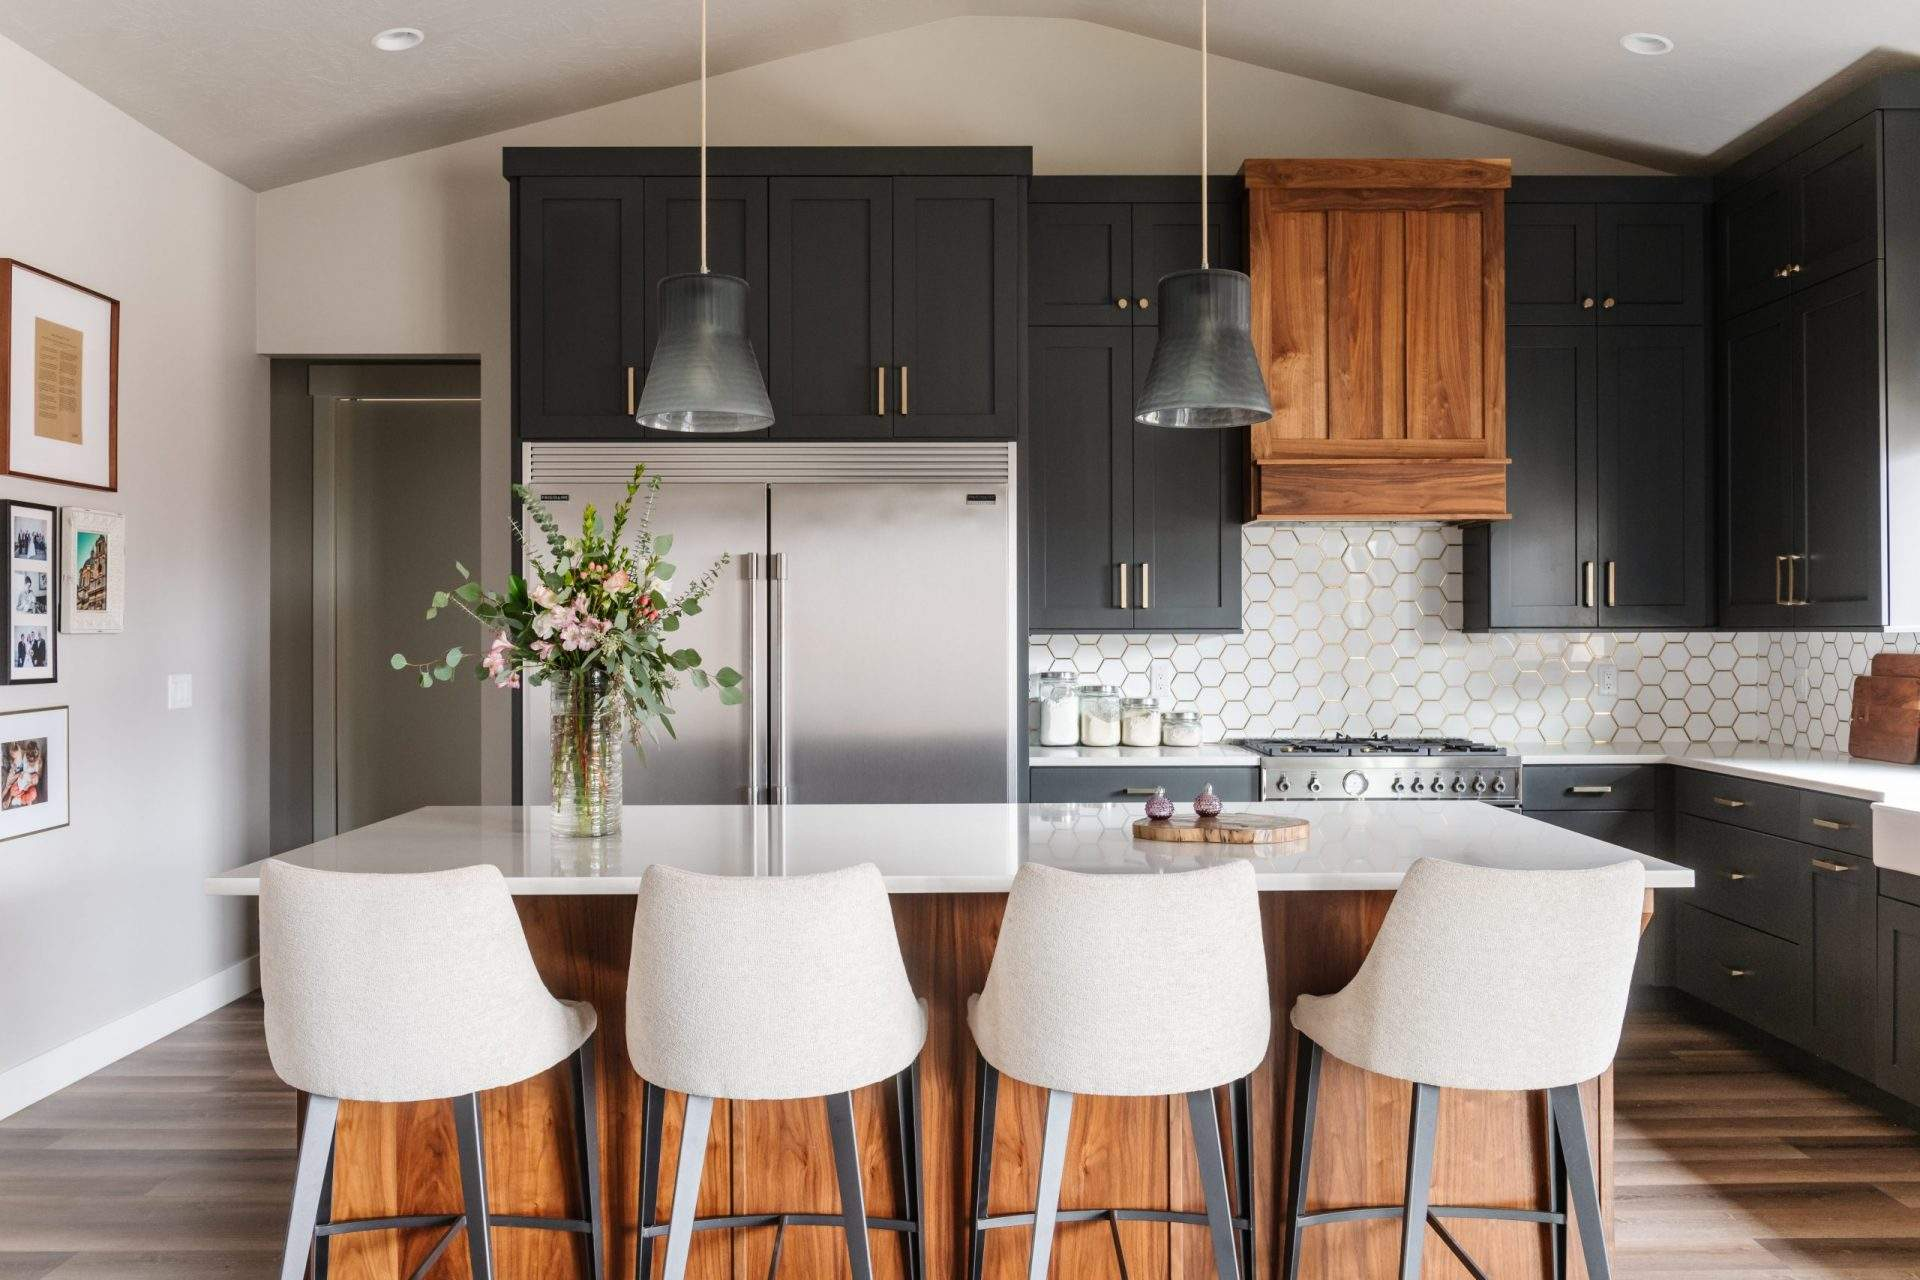 Kitchen with large island and 4 counter stools